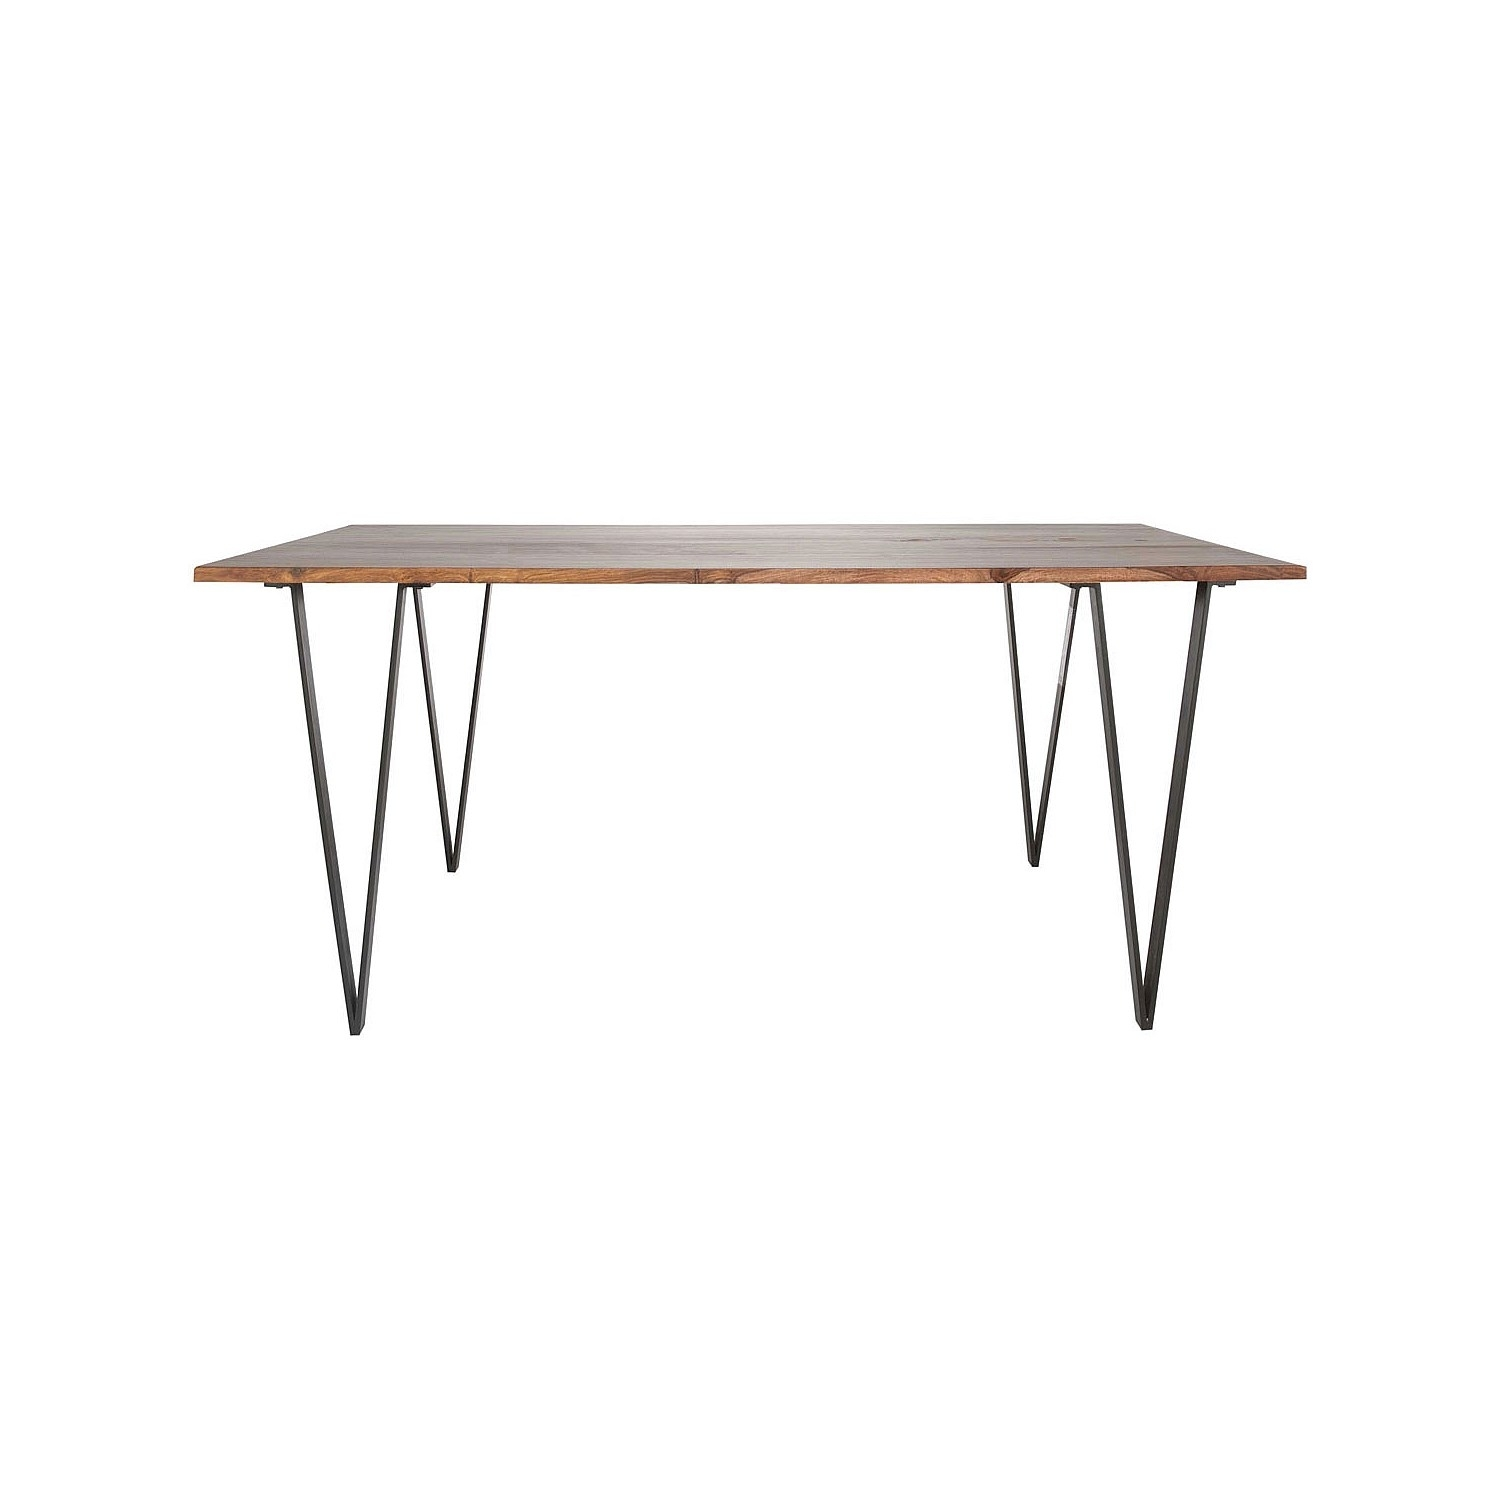 Dining Tables – Wyatt Dining Table 175X90Cm Throughout Most Current Wyatt Dining Tables (Image 3 of 20)